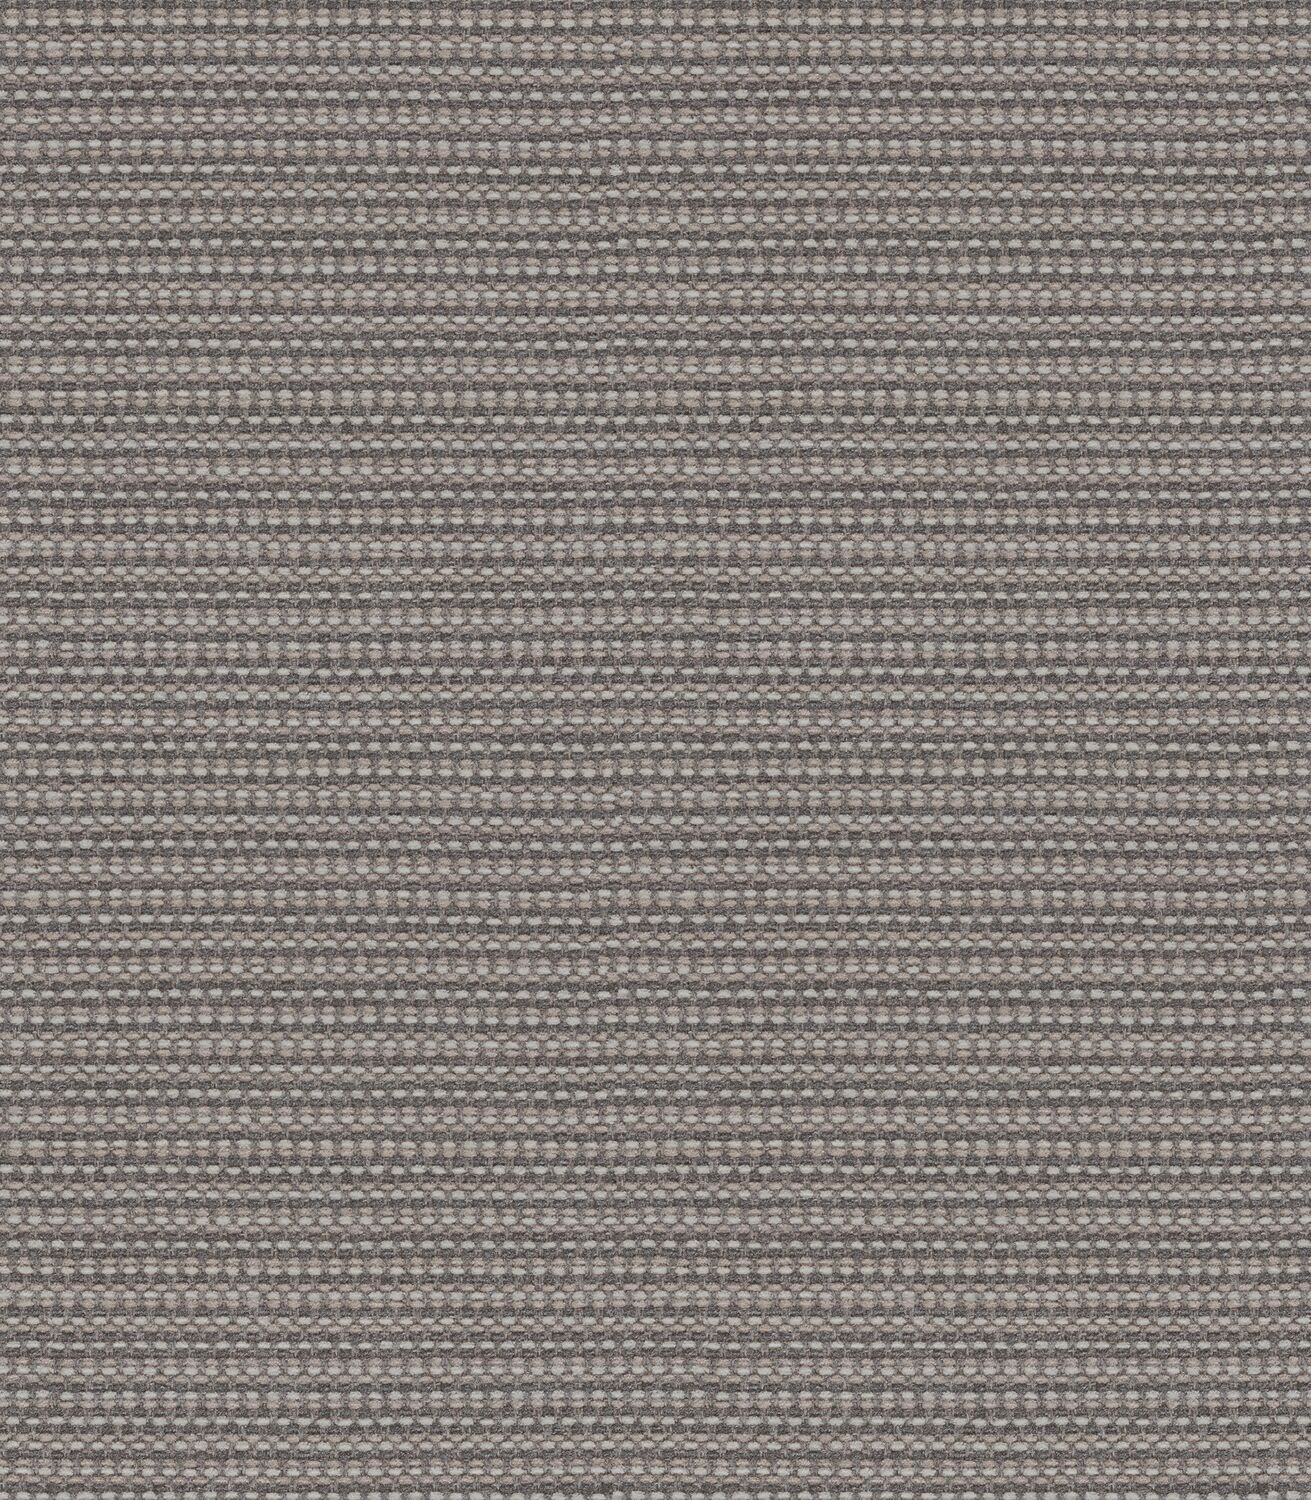 Megapixel - Barnacle - 4097 - 12 Tileable Swatches